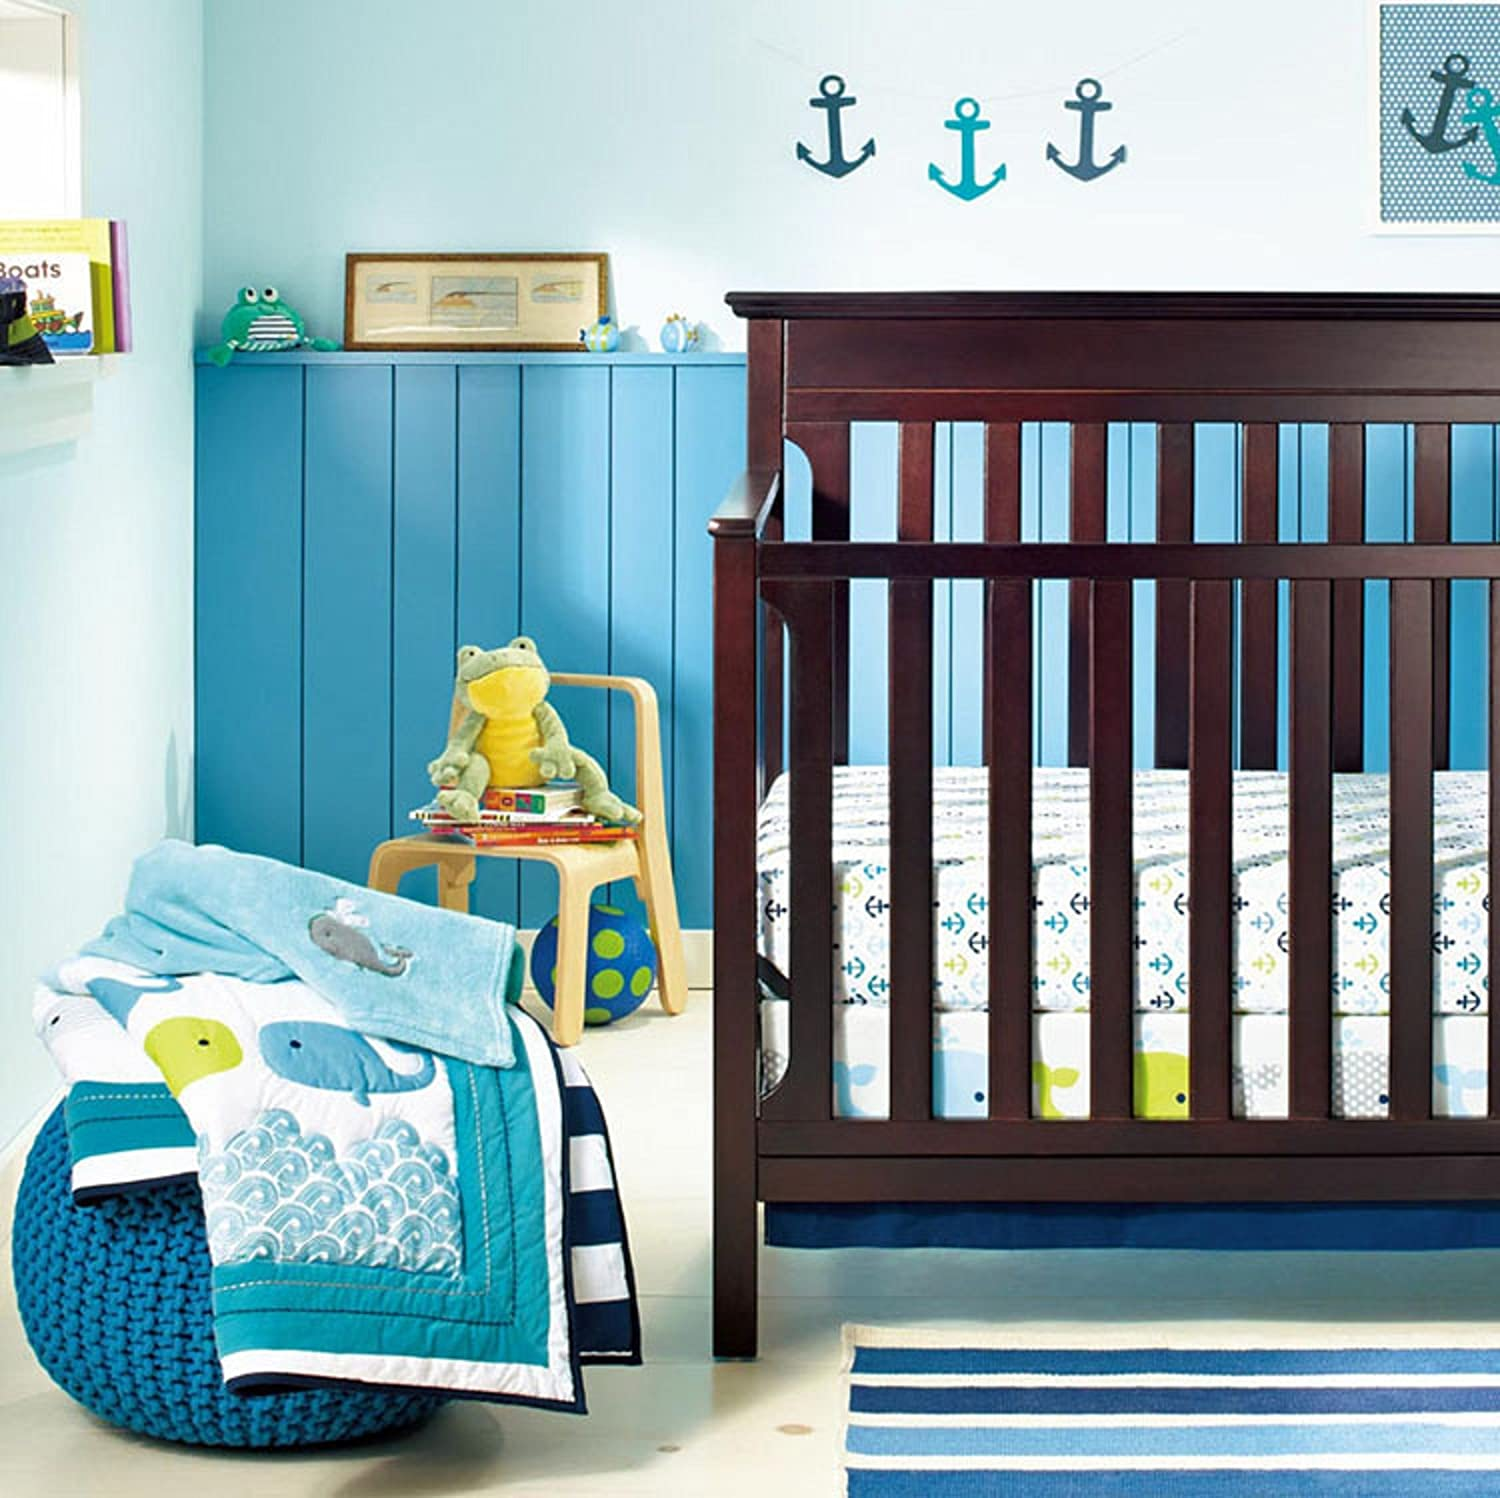 New Baby Boy Neutral Animal Ocean Whale 8pcs Crib Bedding Set with Bumper F.C.L